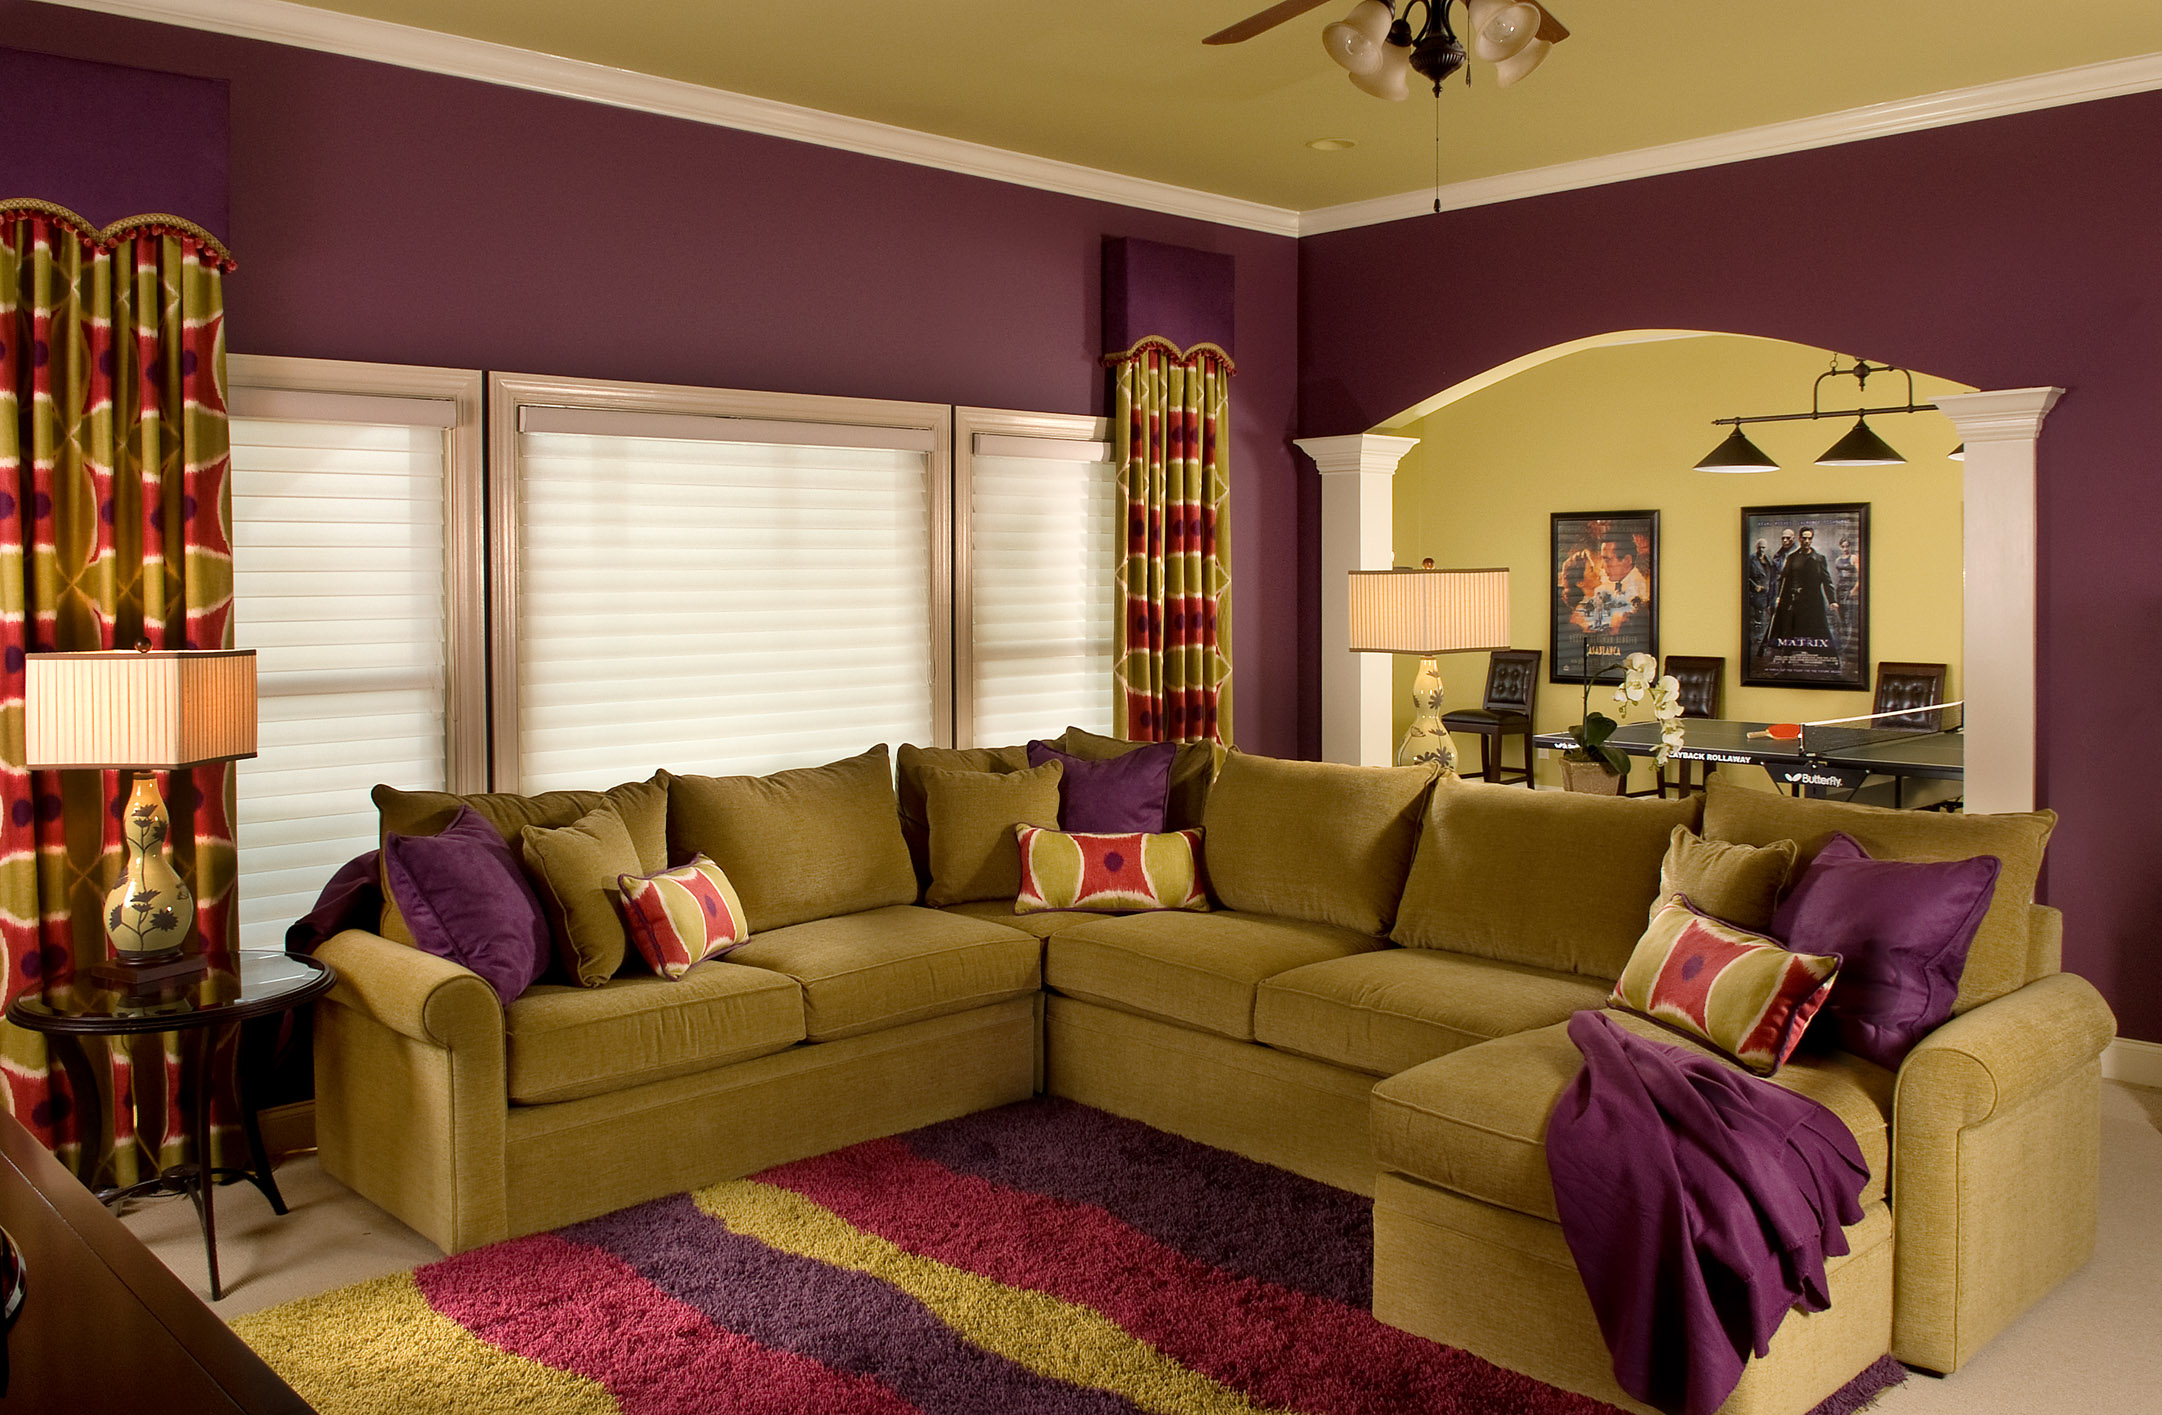 Magnificent Living Room Wall Color Schemes 2162 x 1415 · 645 kB · jpeg